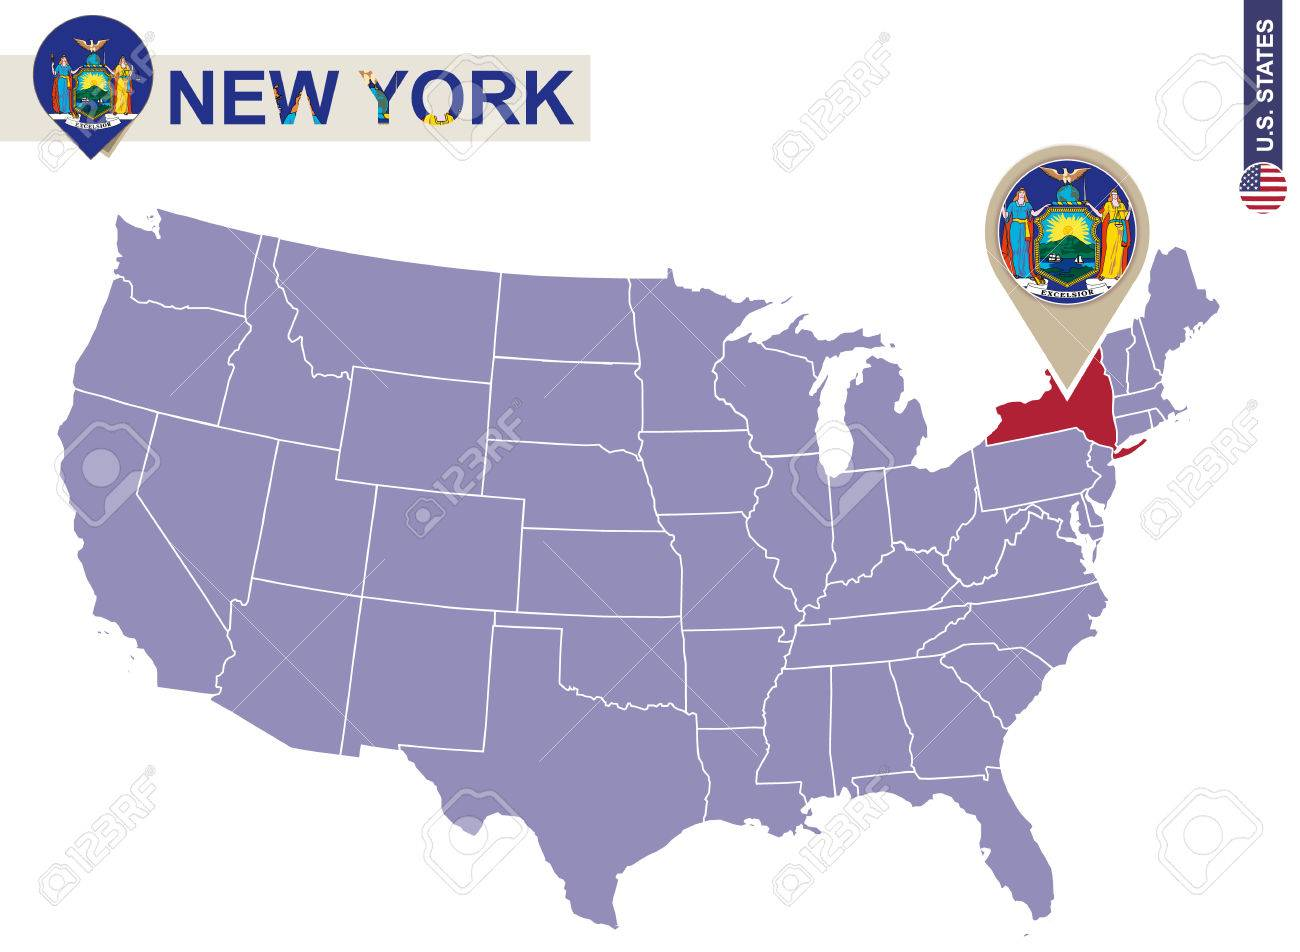 New York State On USA Map New York Flag And Map US States - Us map with new york